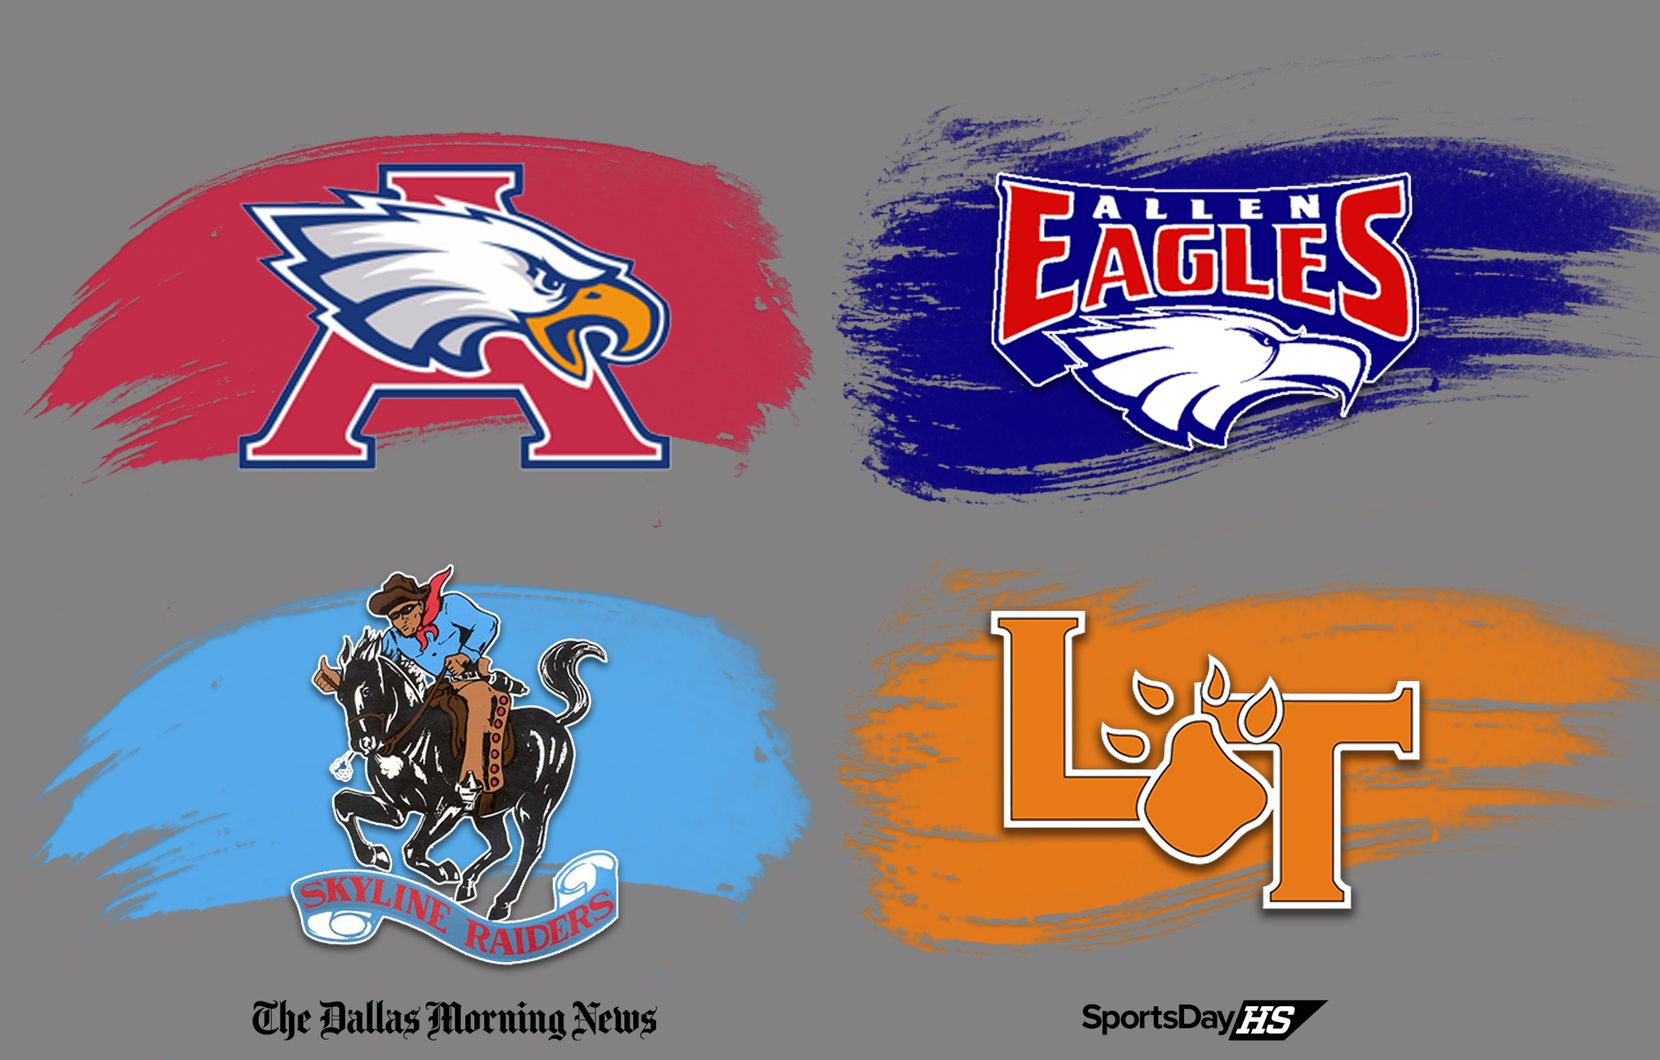 Humble Atascocita (top left) vs. Allen (top right) and Skyline (bottom left) vs. Lancaster (bottom right) are two nondistrict games to keep an eye on in the 2020 season.